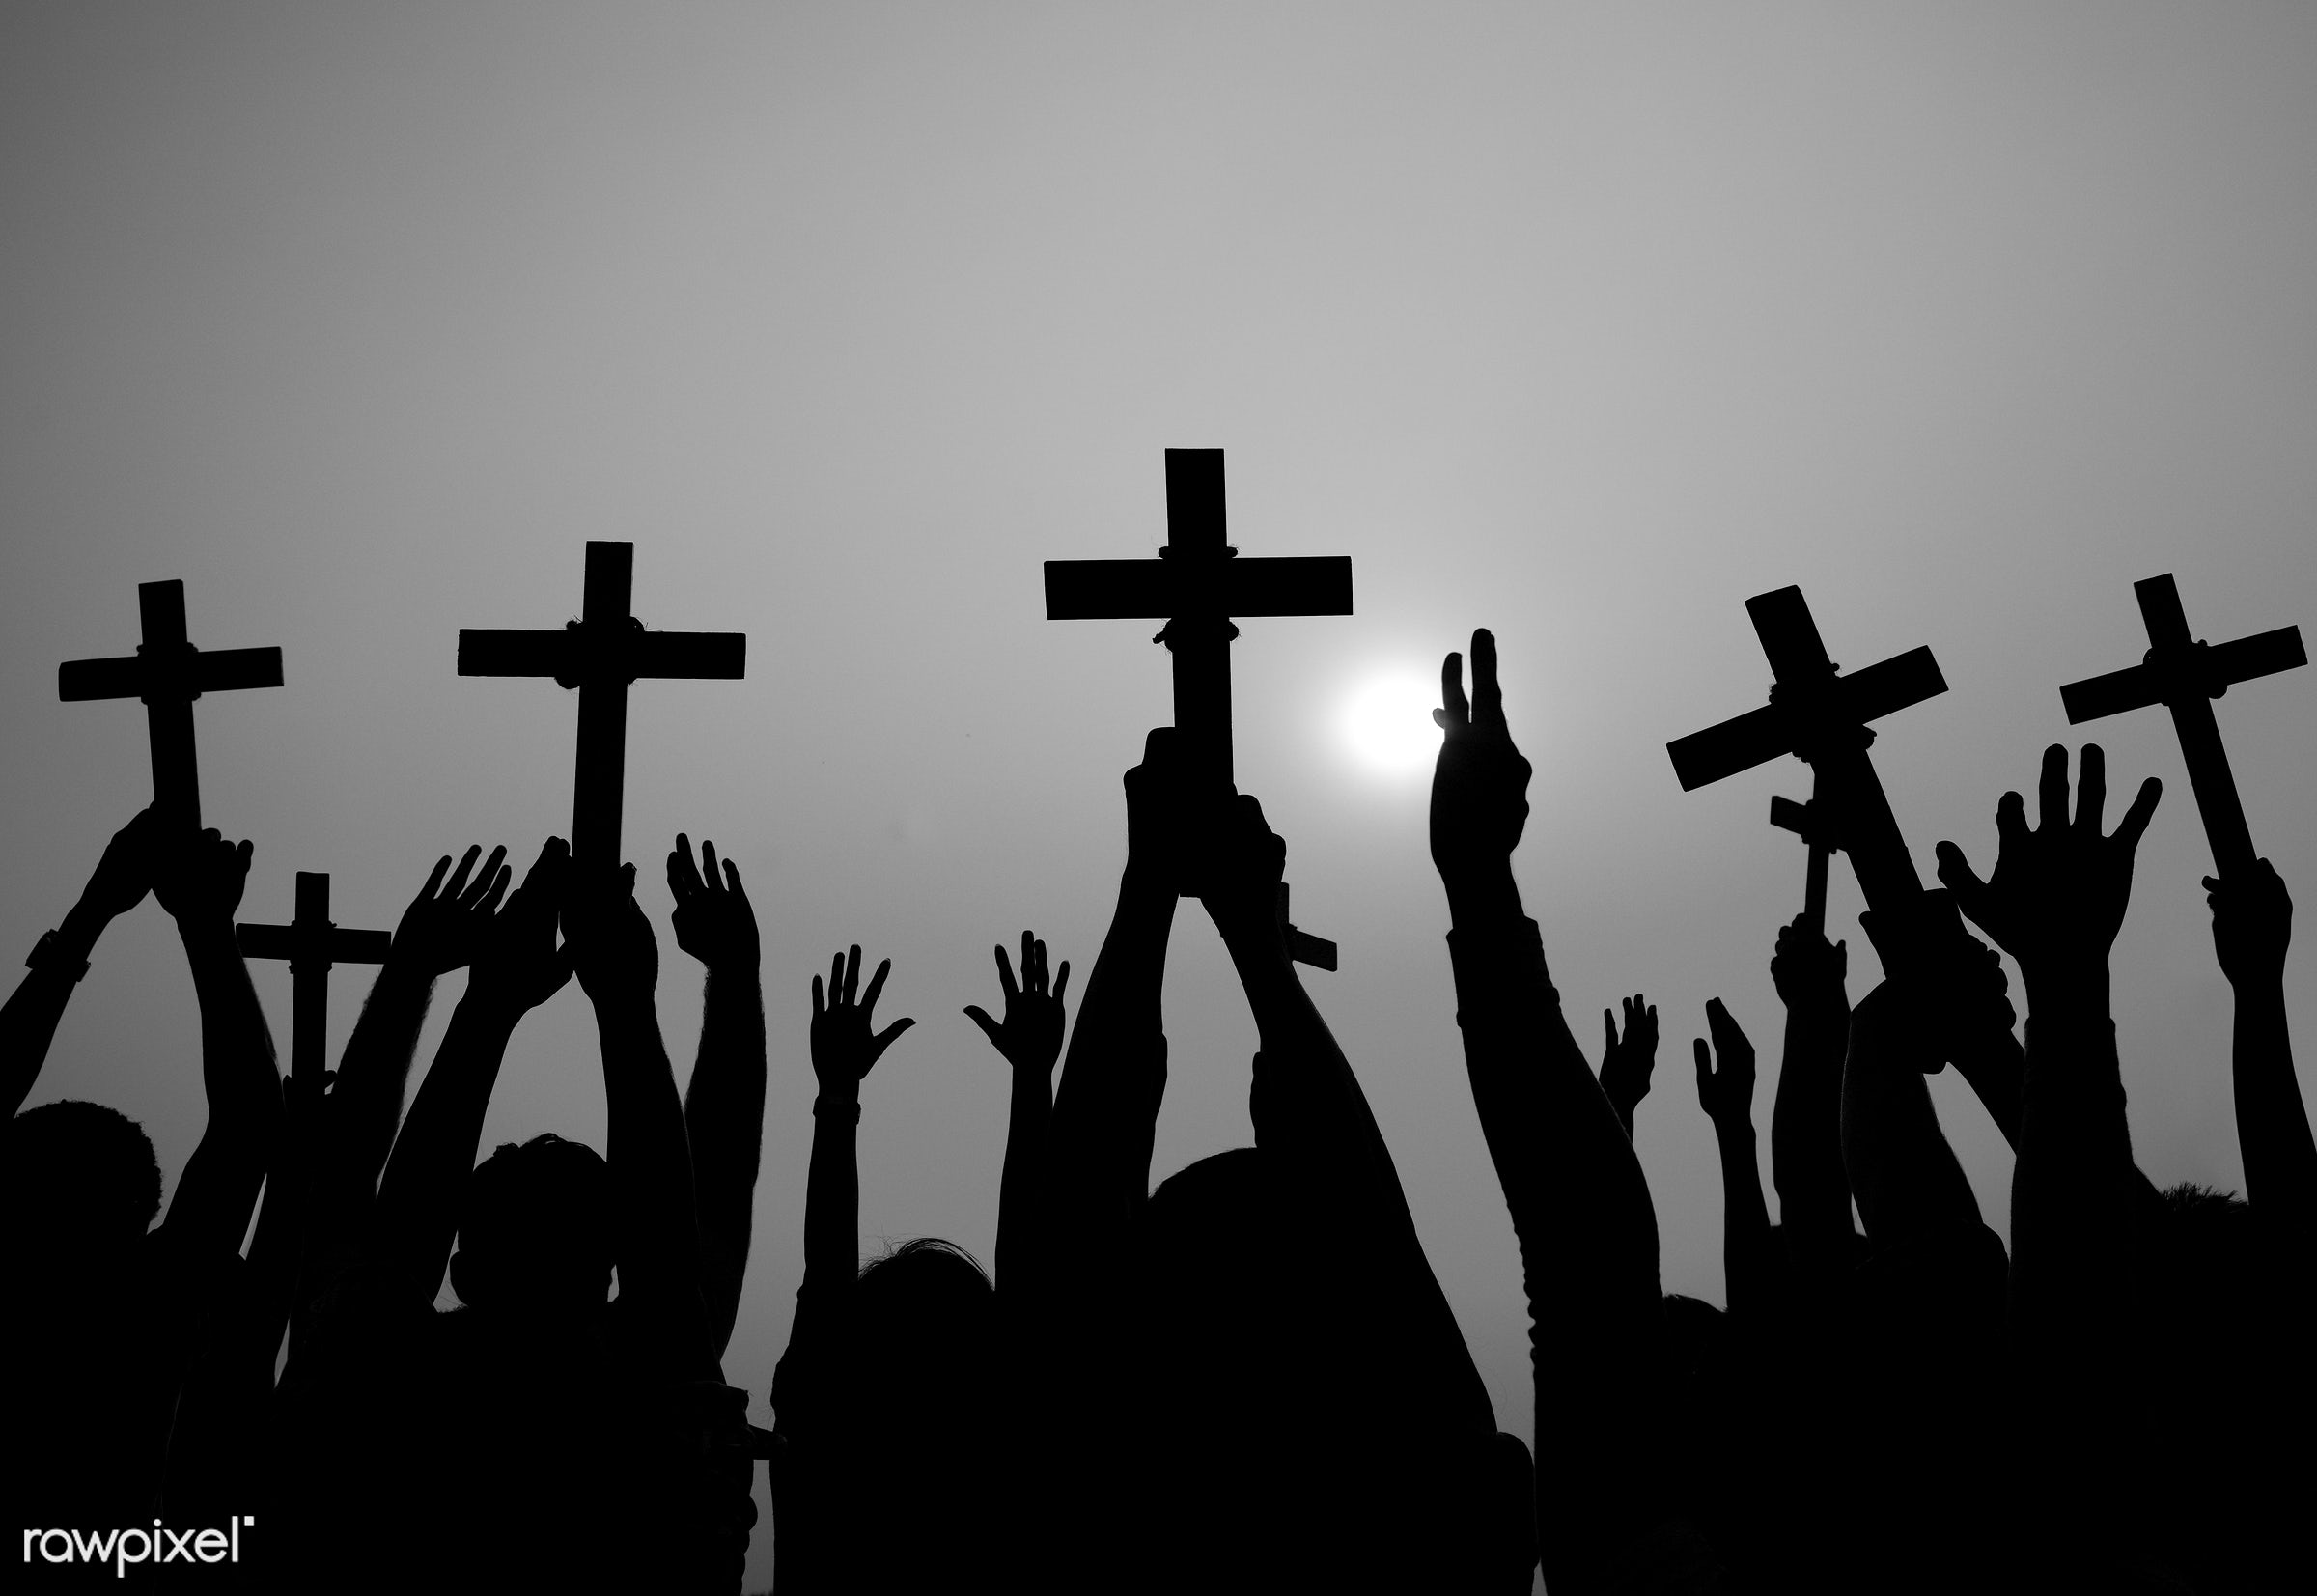 easter, holding, holidays and celebrations, arm raised, aspiration, bowing, catholicism, cemetery, christianity, concepts...